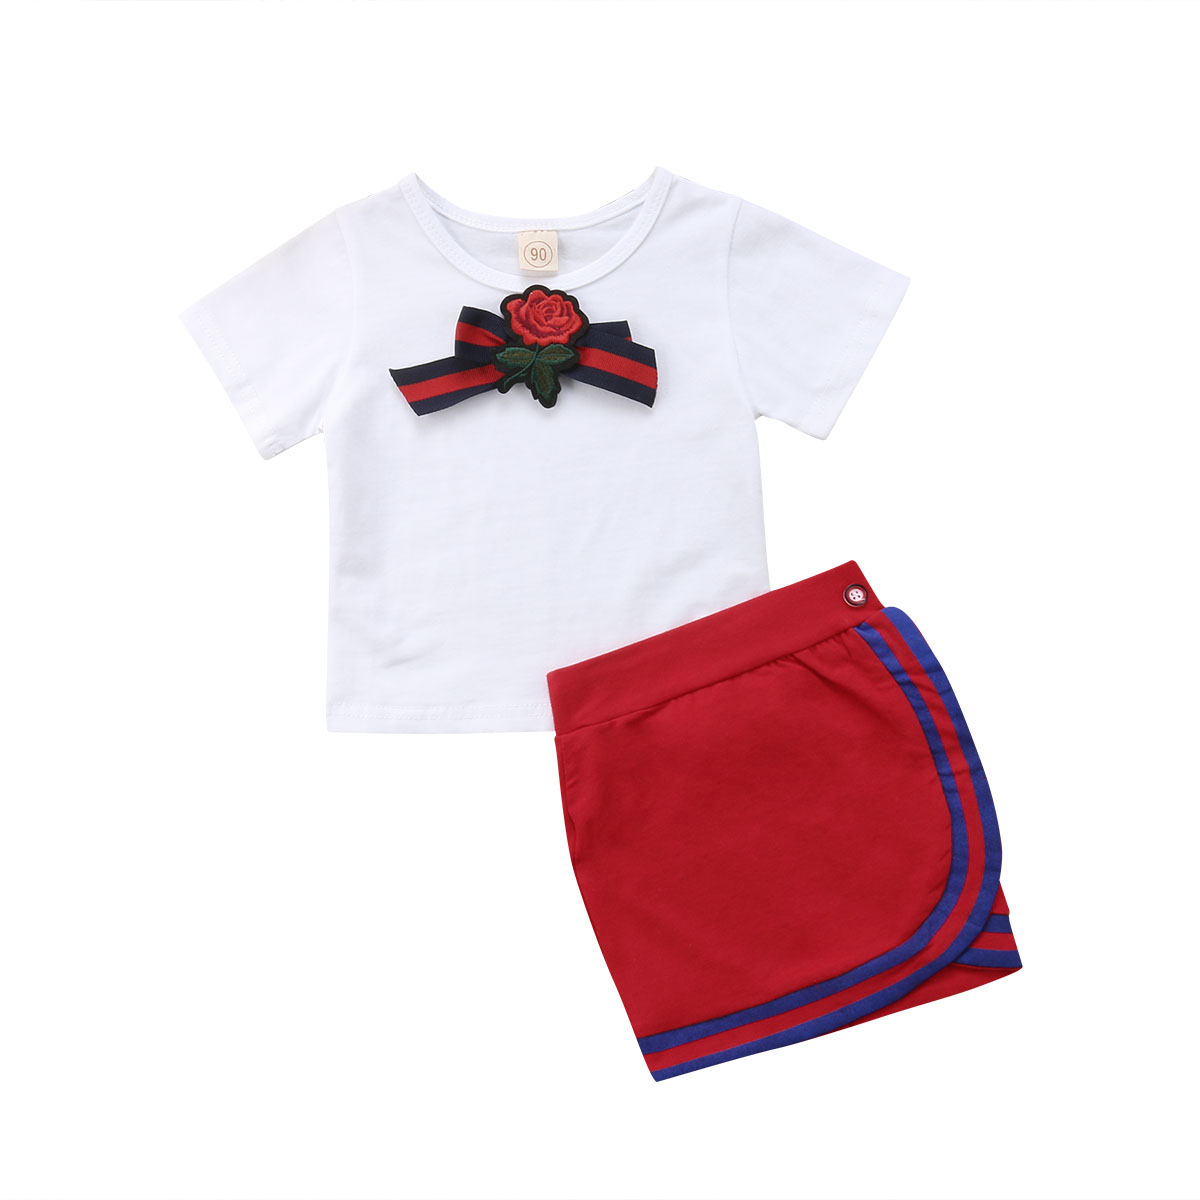 все цены на Newborn Kids Baby Girls Clothes Sets Bow Flower Tie Tops Short Sleeve T-shirt Skirts 2pcs Cotton Outfits Set Girl 1-5T онлайн